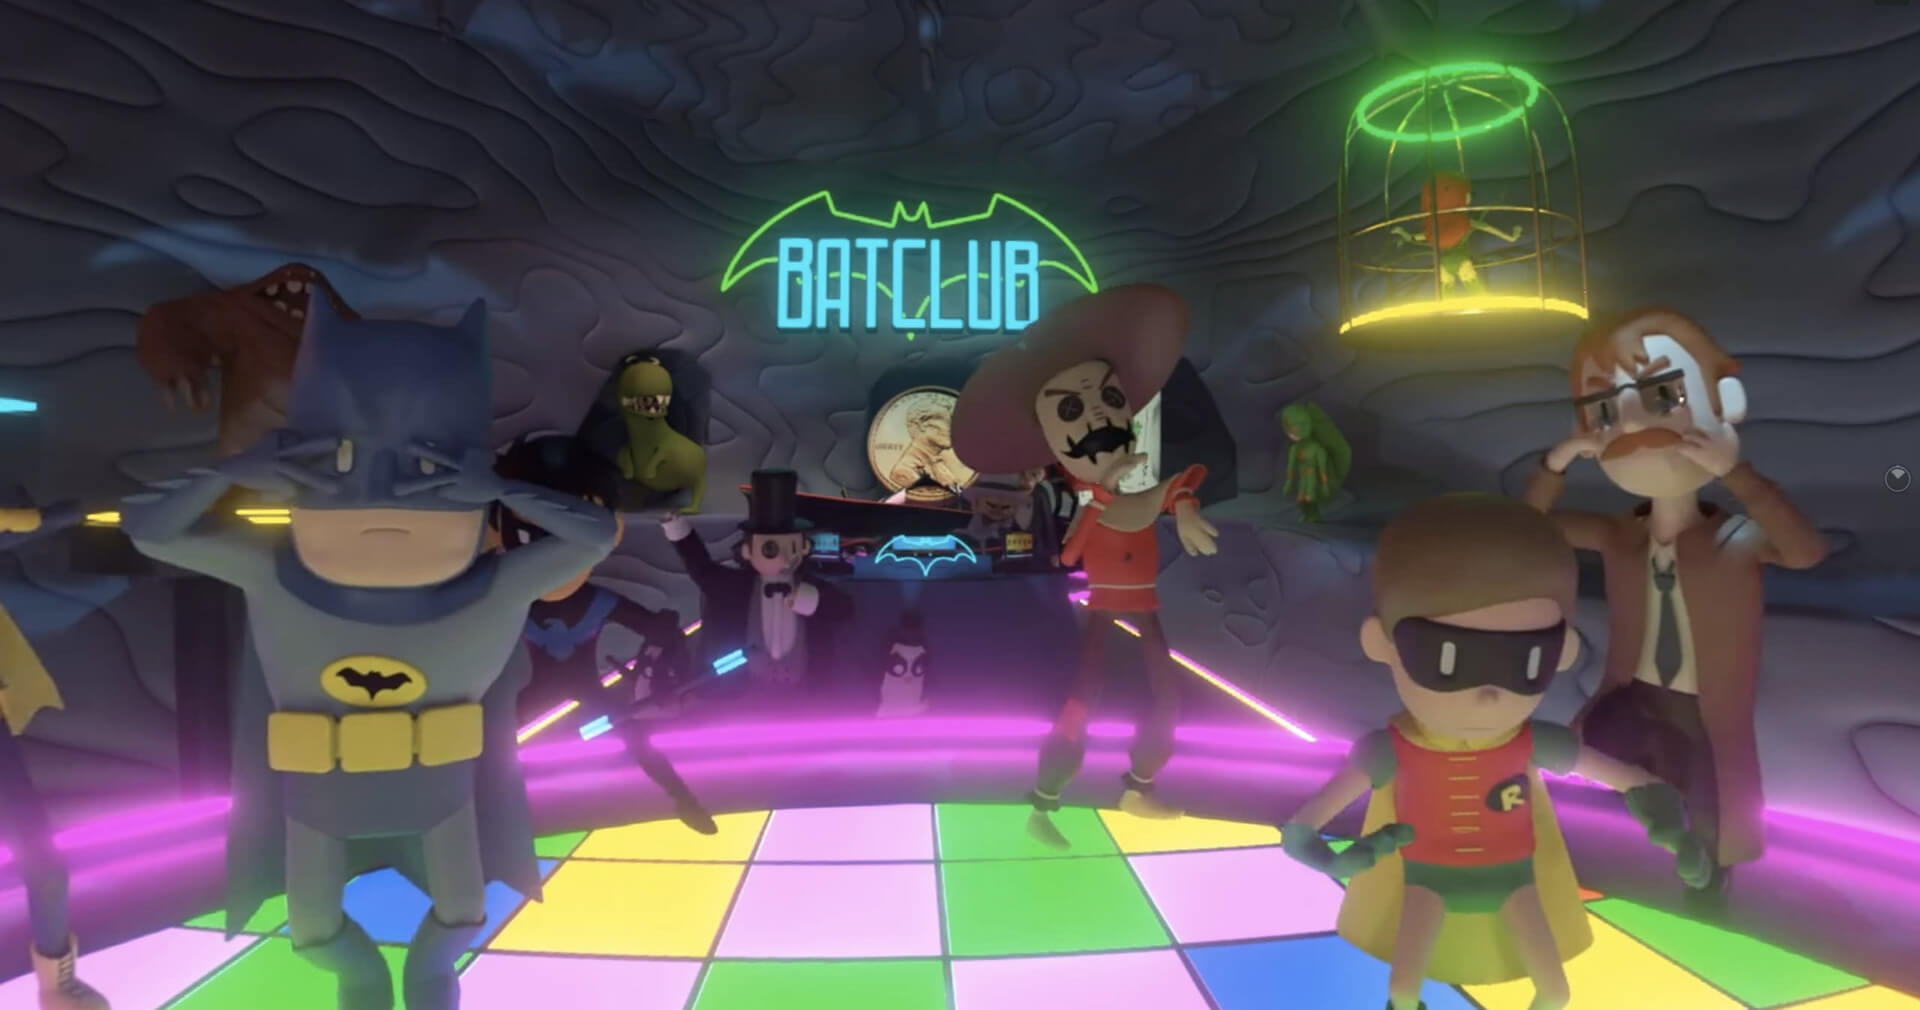 Batcave Dance Party VR